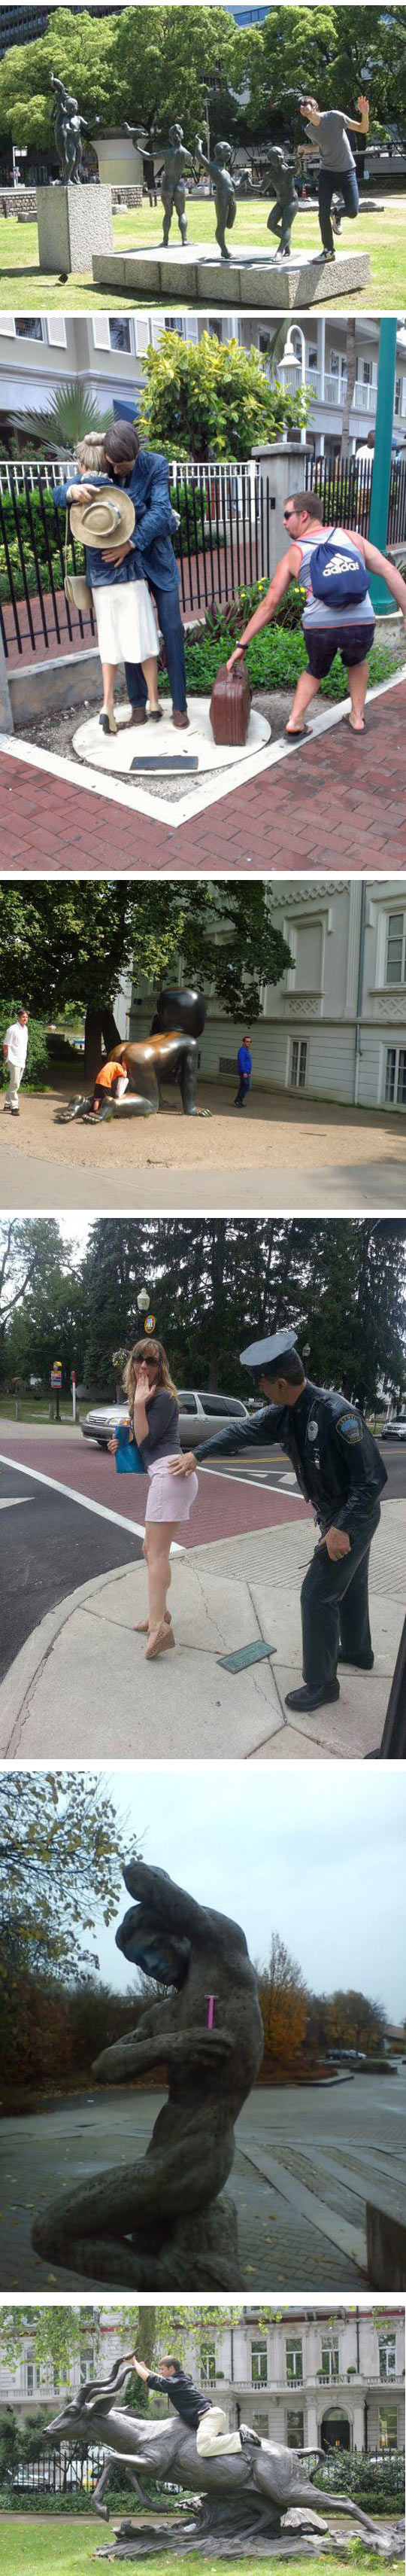 funny-statues-play-fun-public-parks